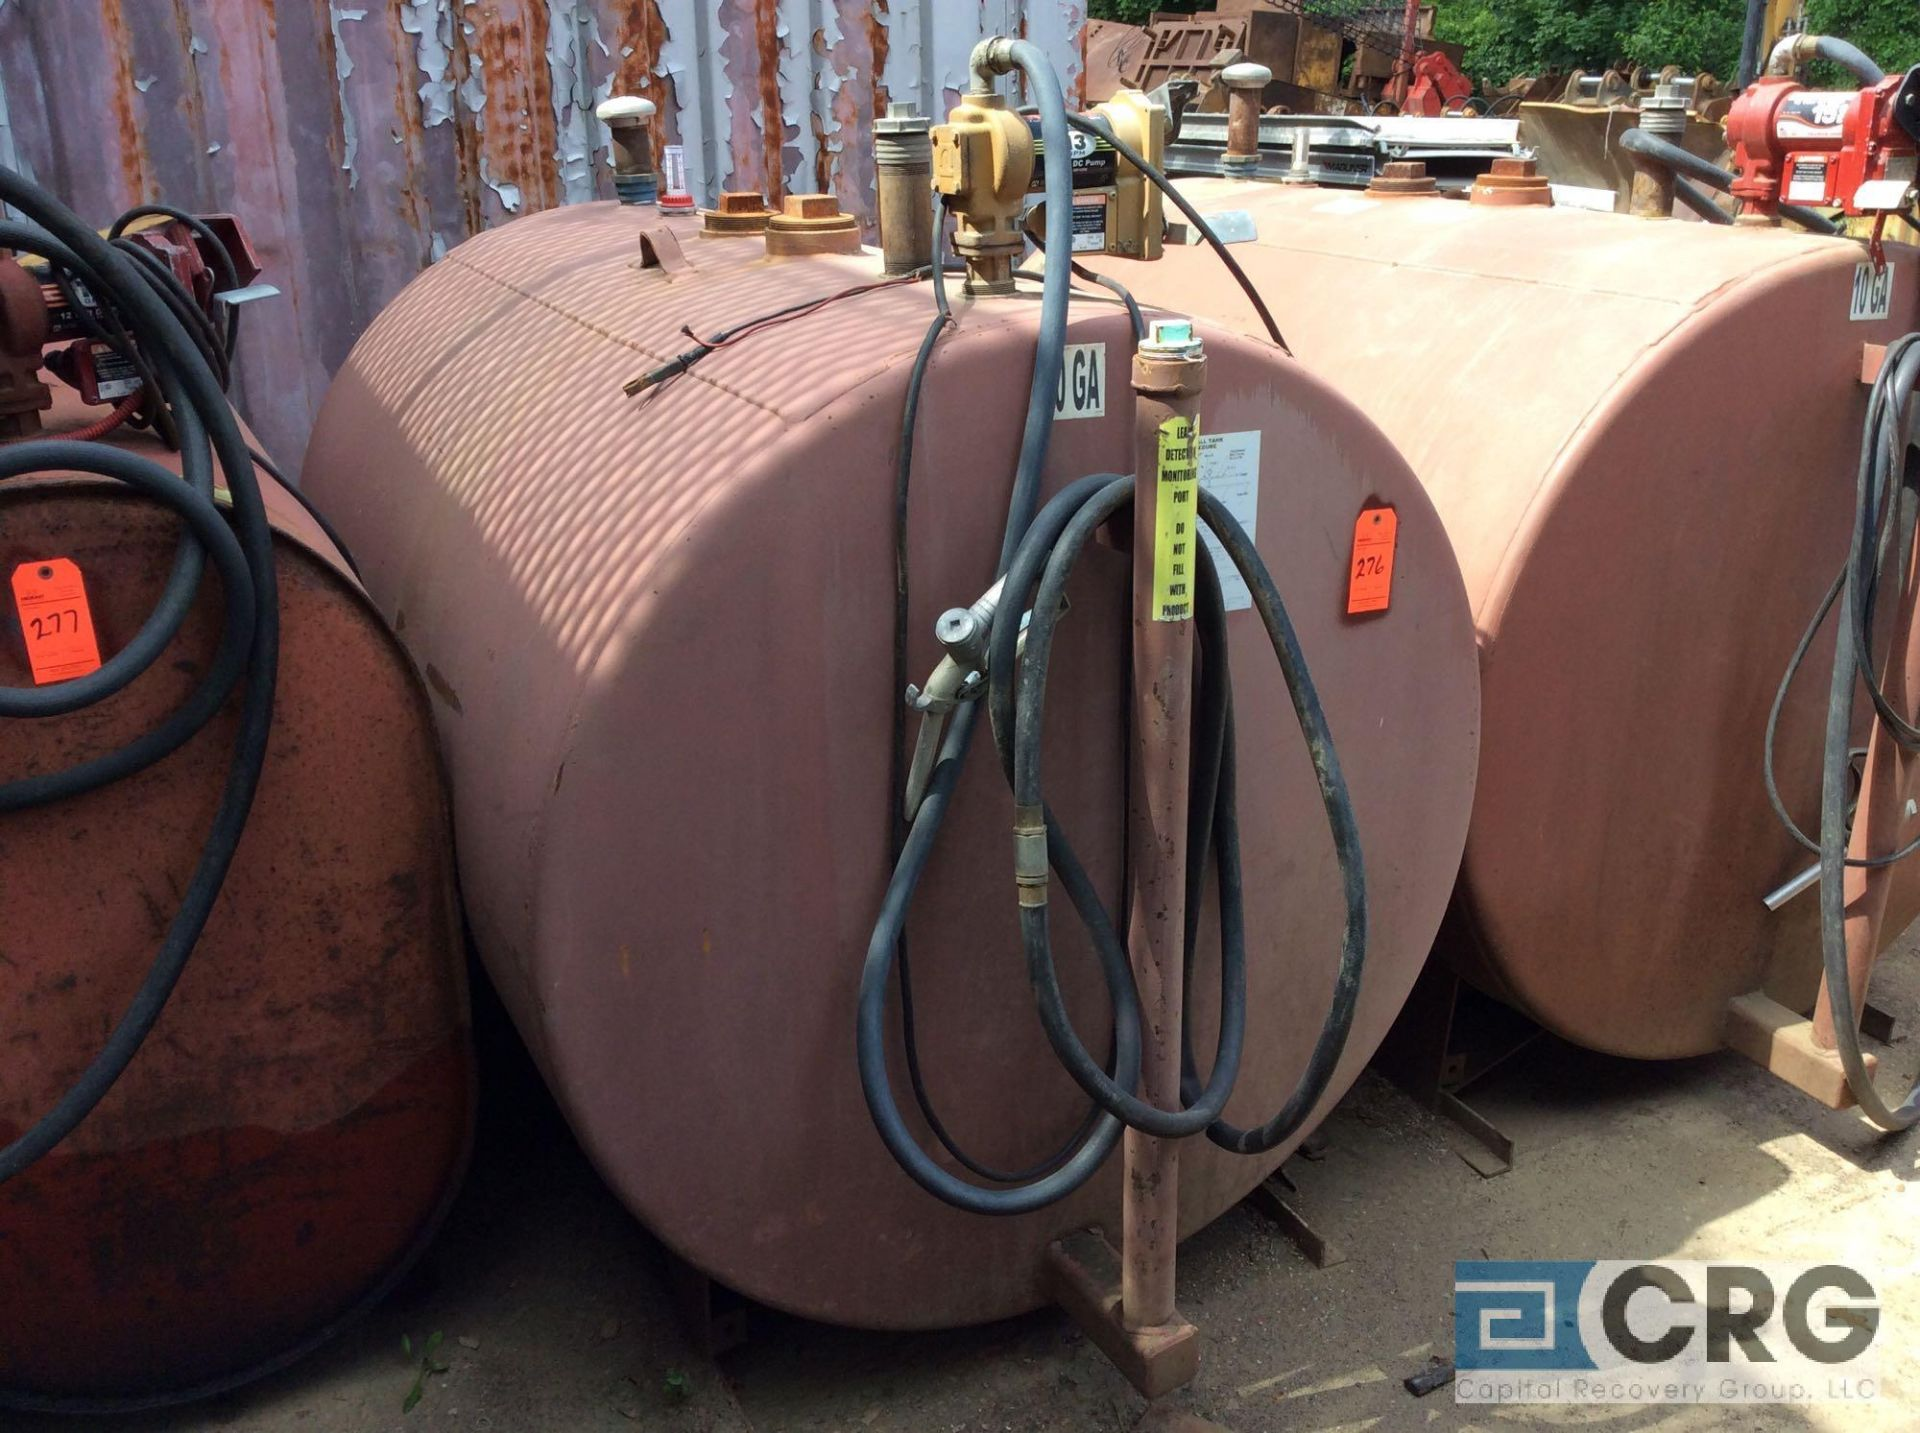 Lot 276 - double walled steel skid mounted fuel storage tank, approx 500 gal capacity with pump